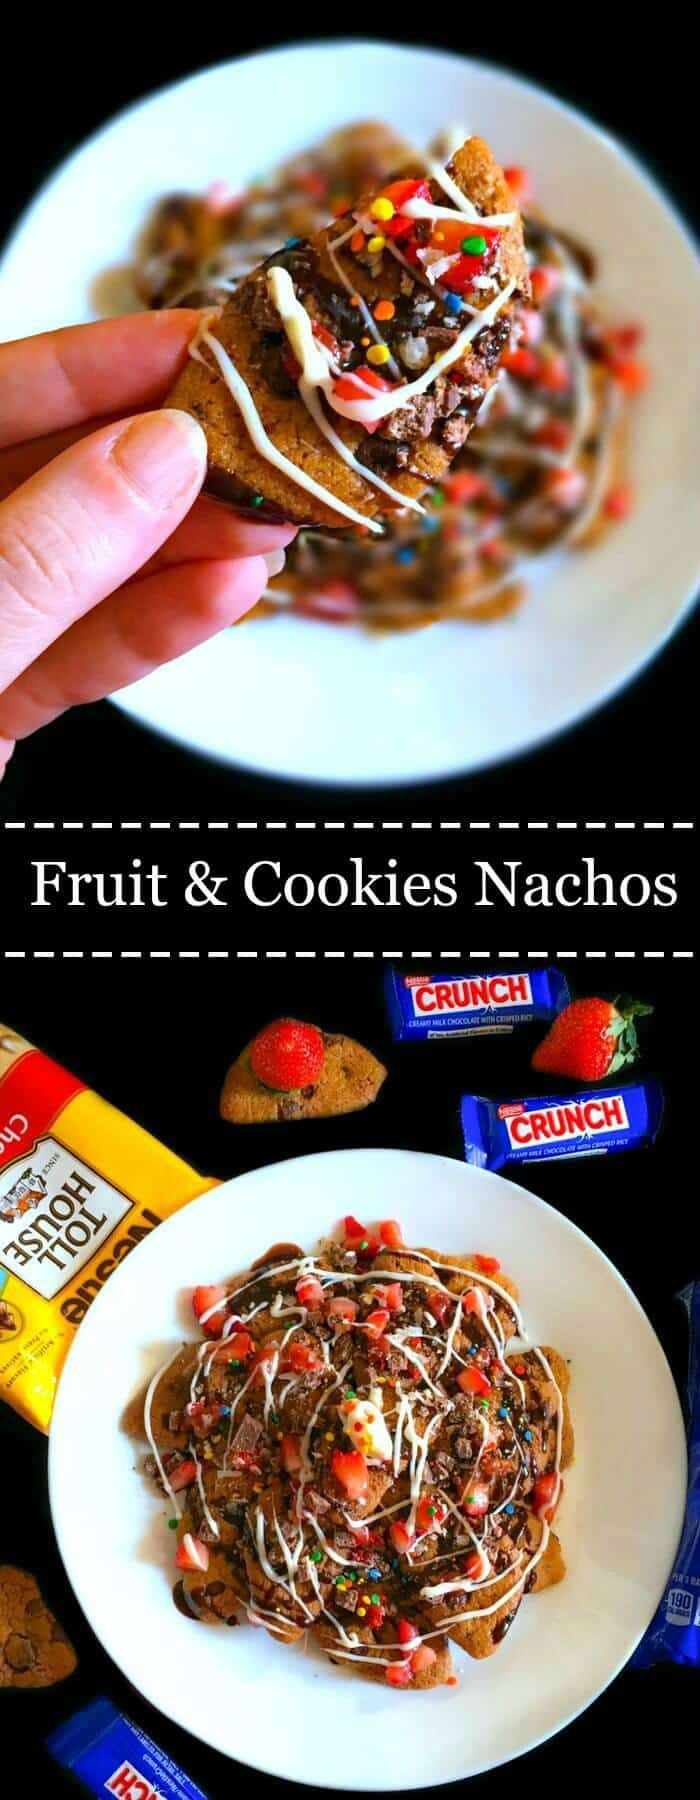 Fruit and Cookies Nachos: #ad #NestleSchoolDays #cbias #dessert #nacho #backtoschool